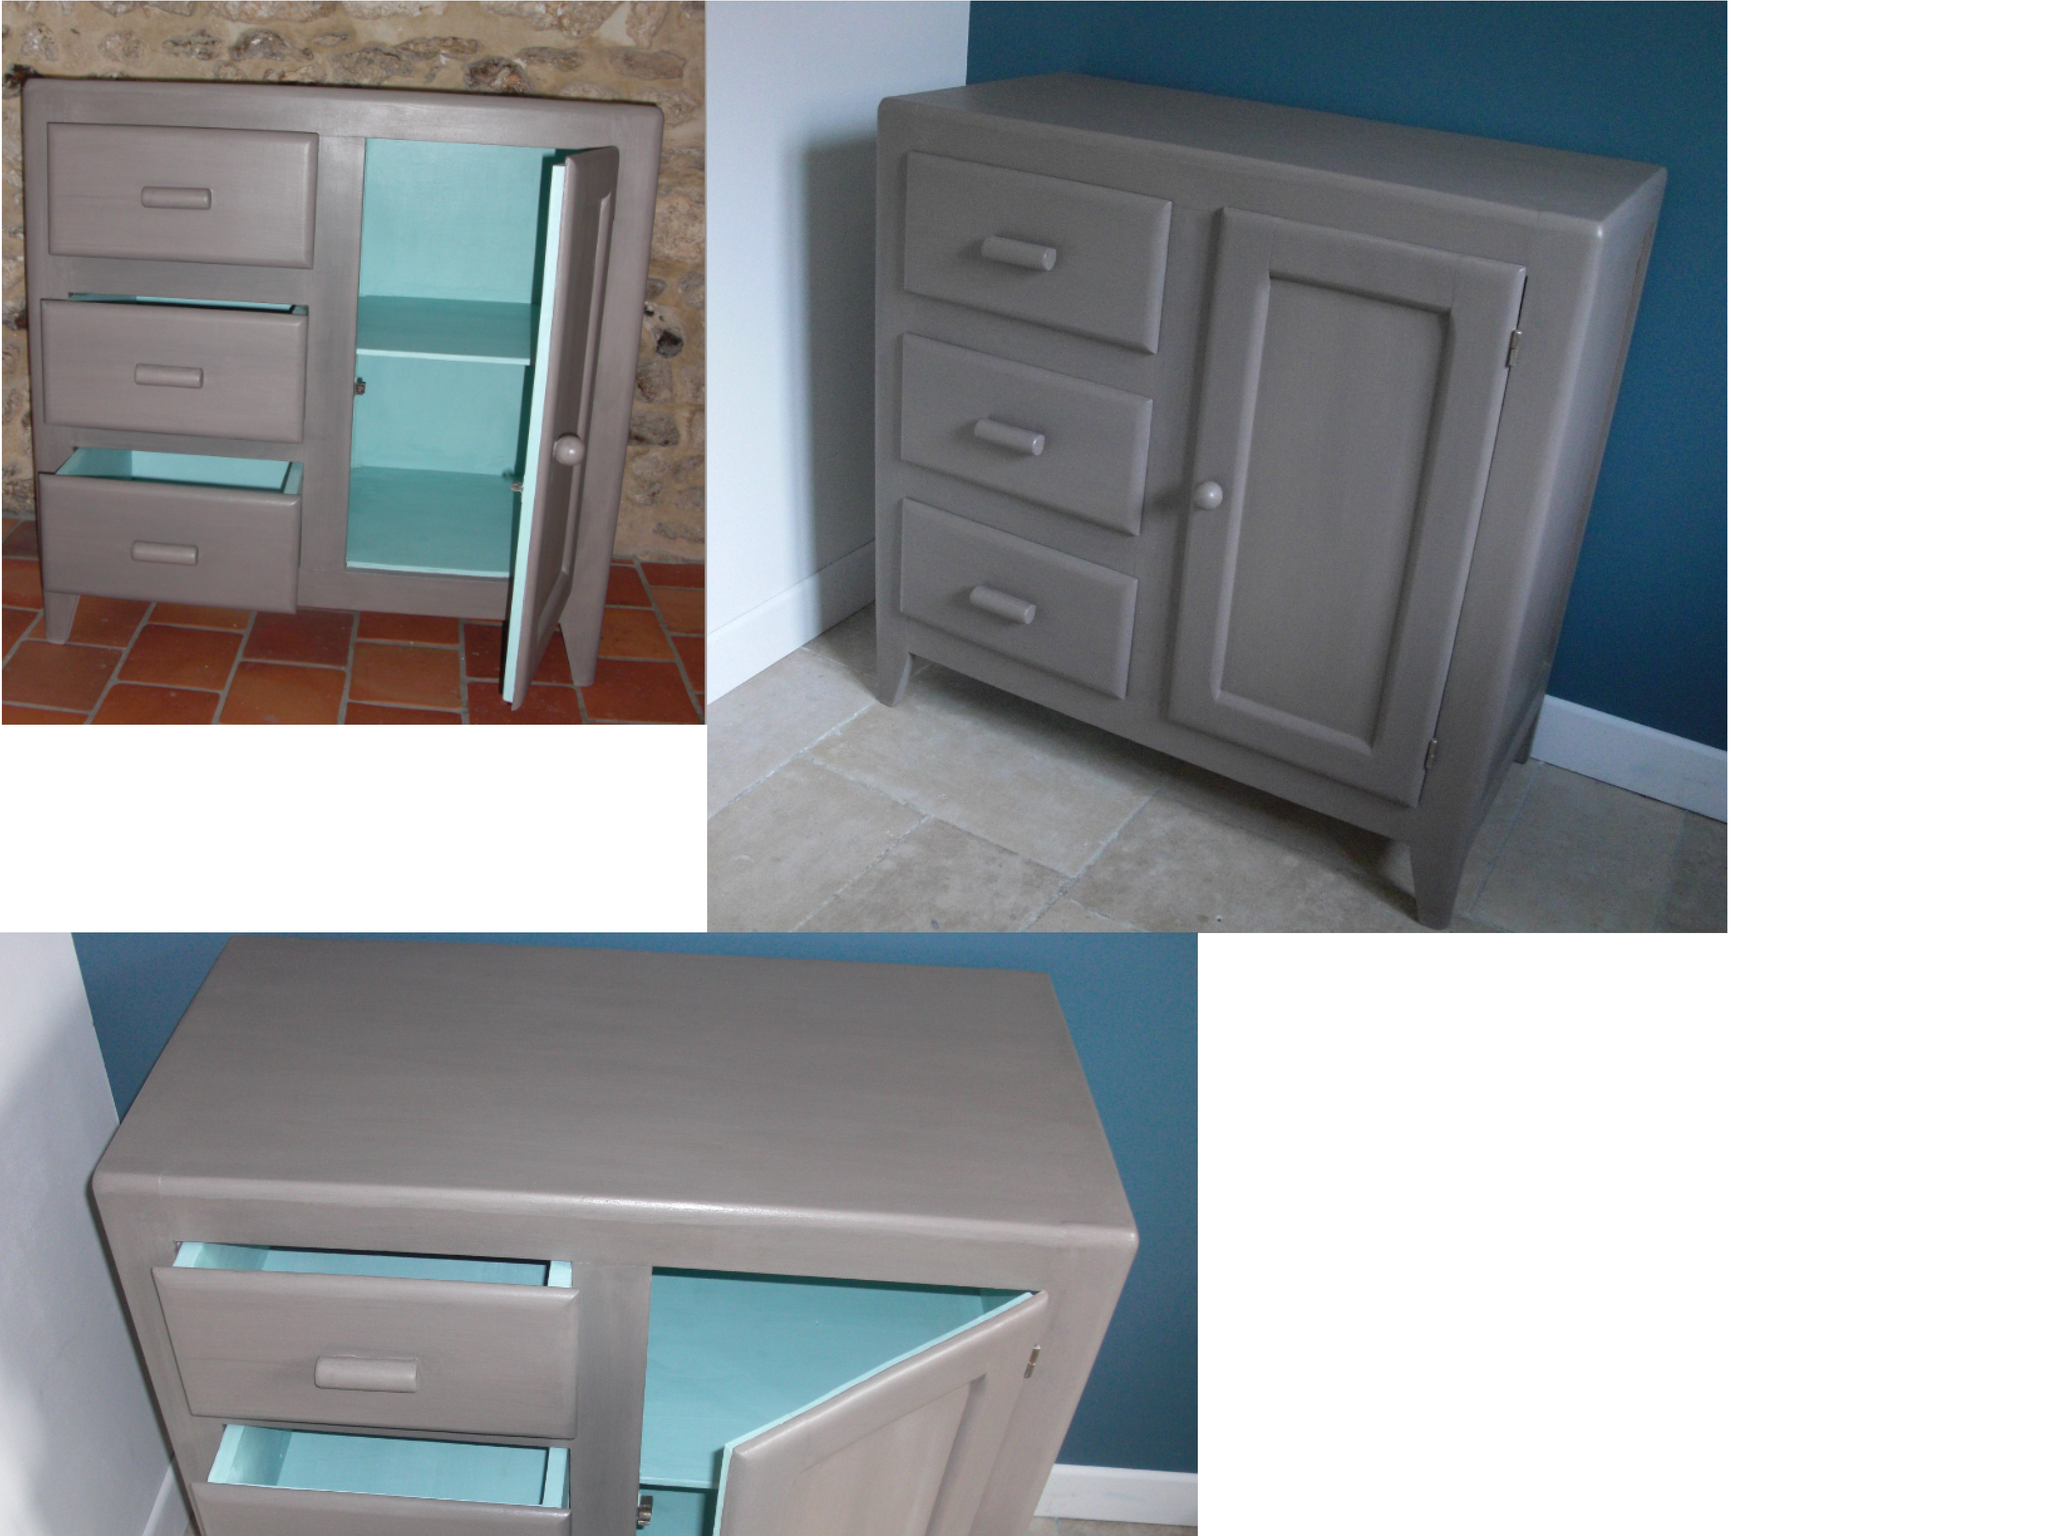 une premi re mise en peinture en taupe et bleu lagon. Black Bedroom Furniture Sets. Home Design Ideas